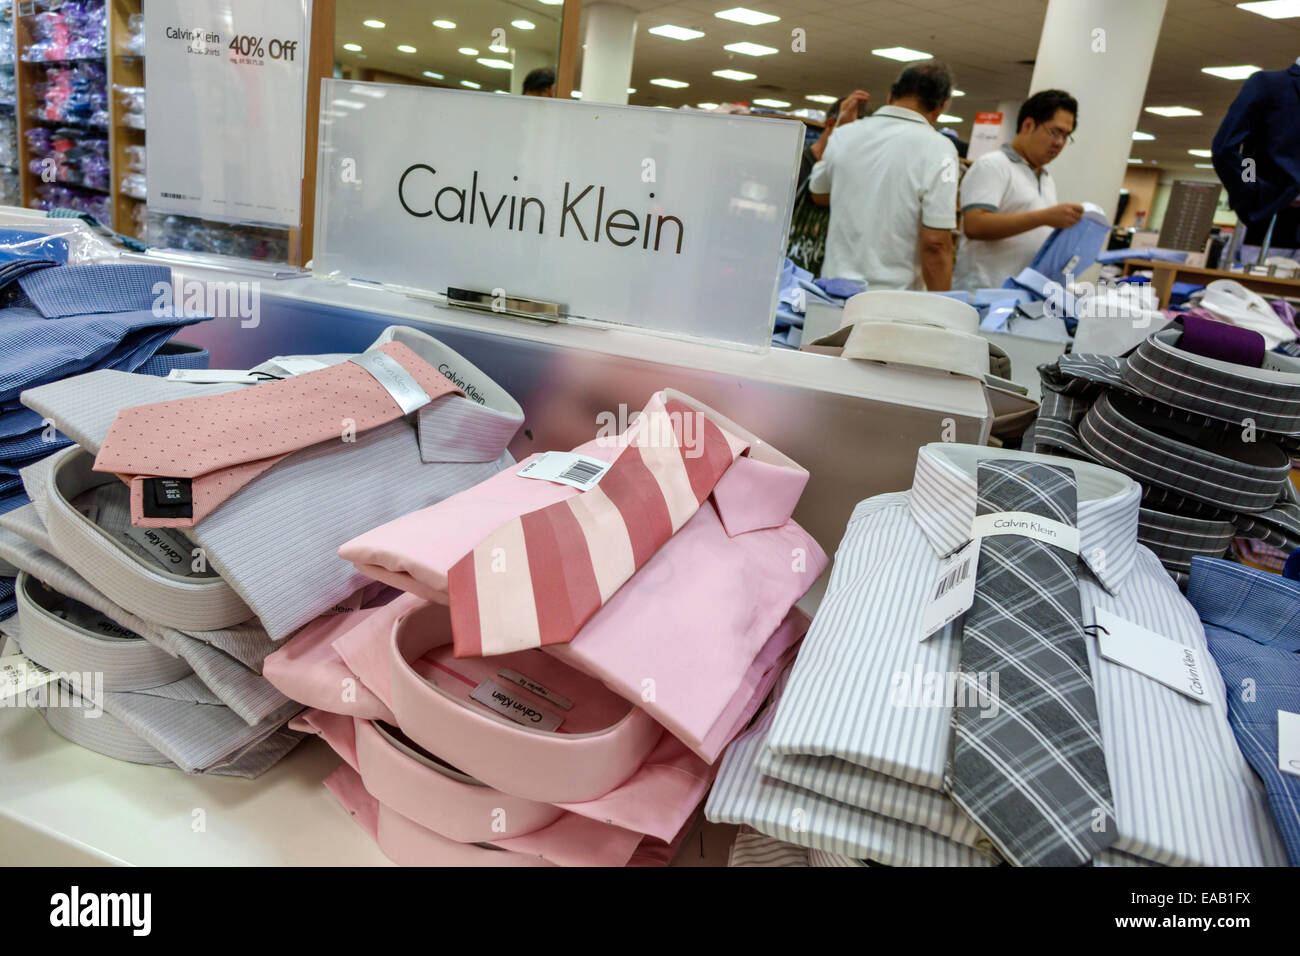 8564d237c16da Miami Florida Macy s department store shopping inside sale display fashion Calvin  Klein dress shirts ties men s